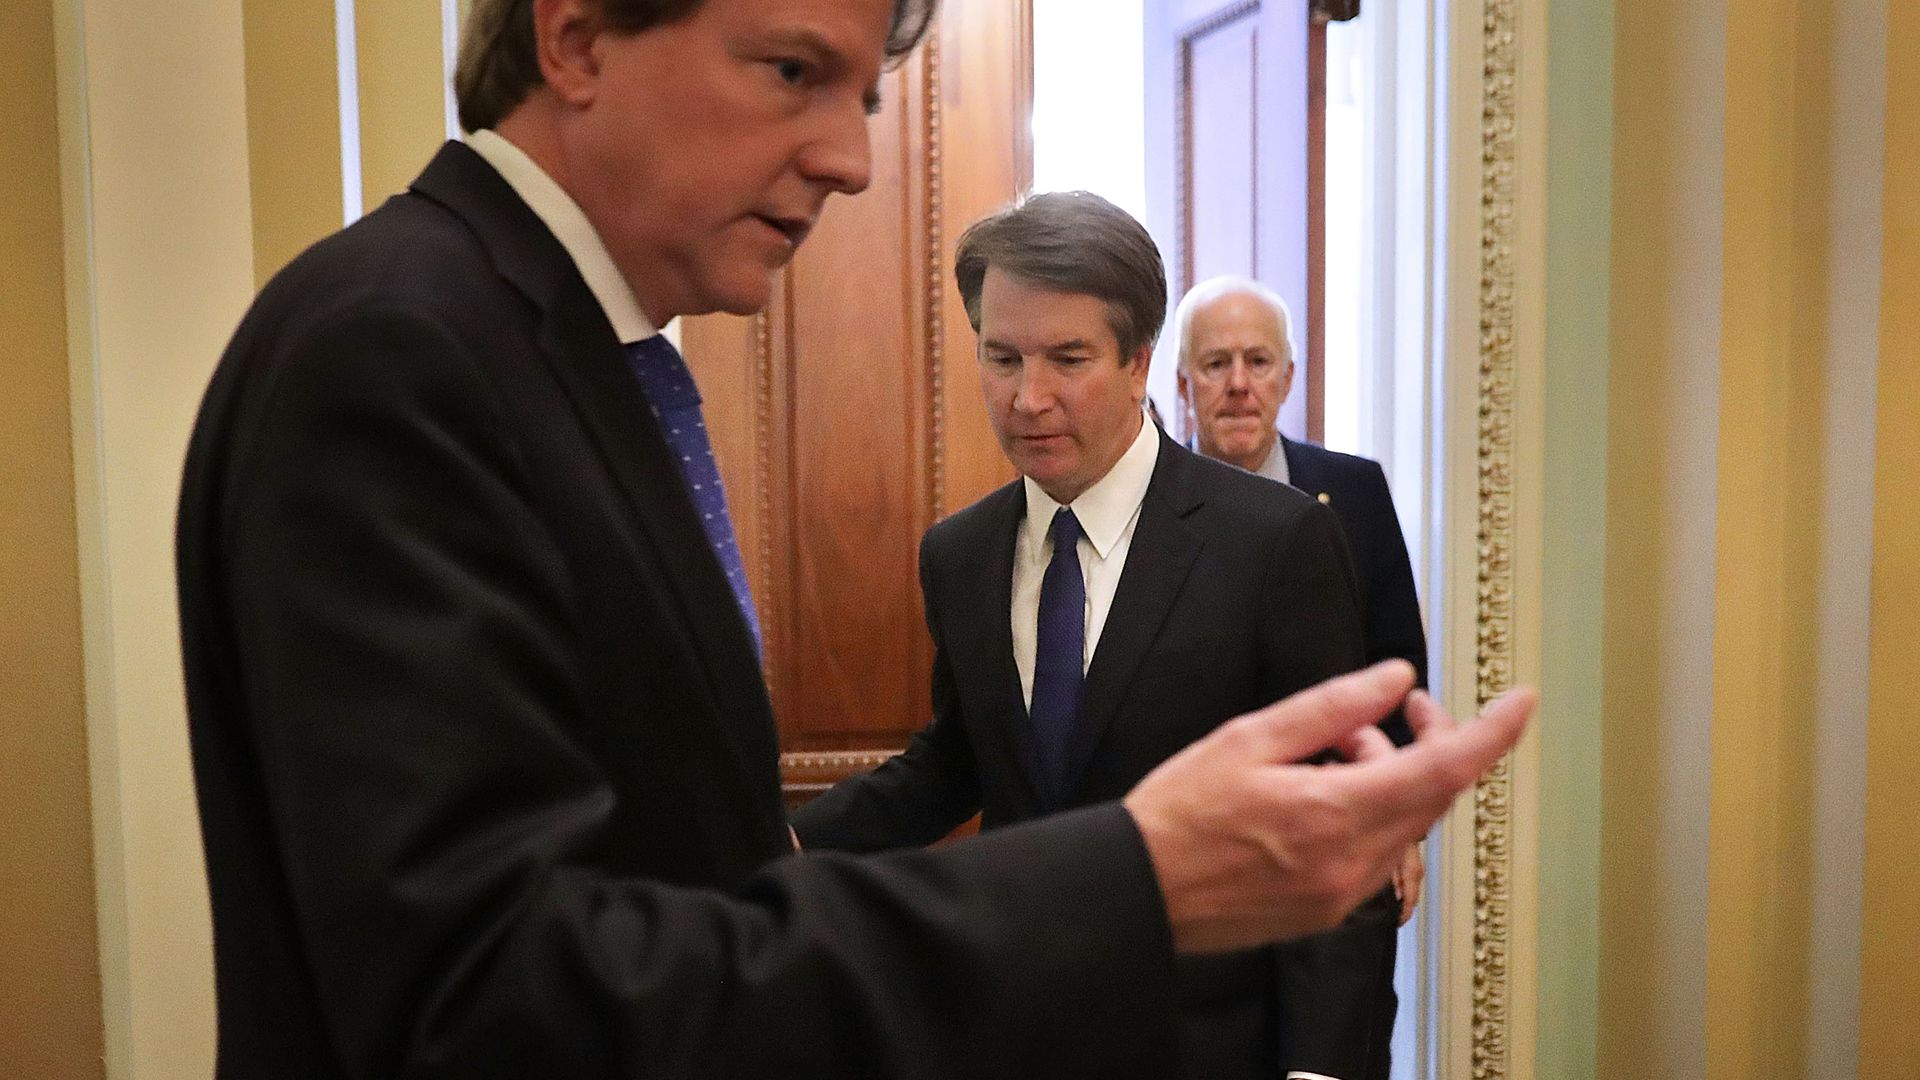 White House Counsel Don McGahn, Judge Brett Kavanaugh and Senate Majority Whip John Cornyn (R-TX). Photo: Chip Somodevilla/Getty Images